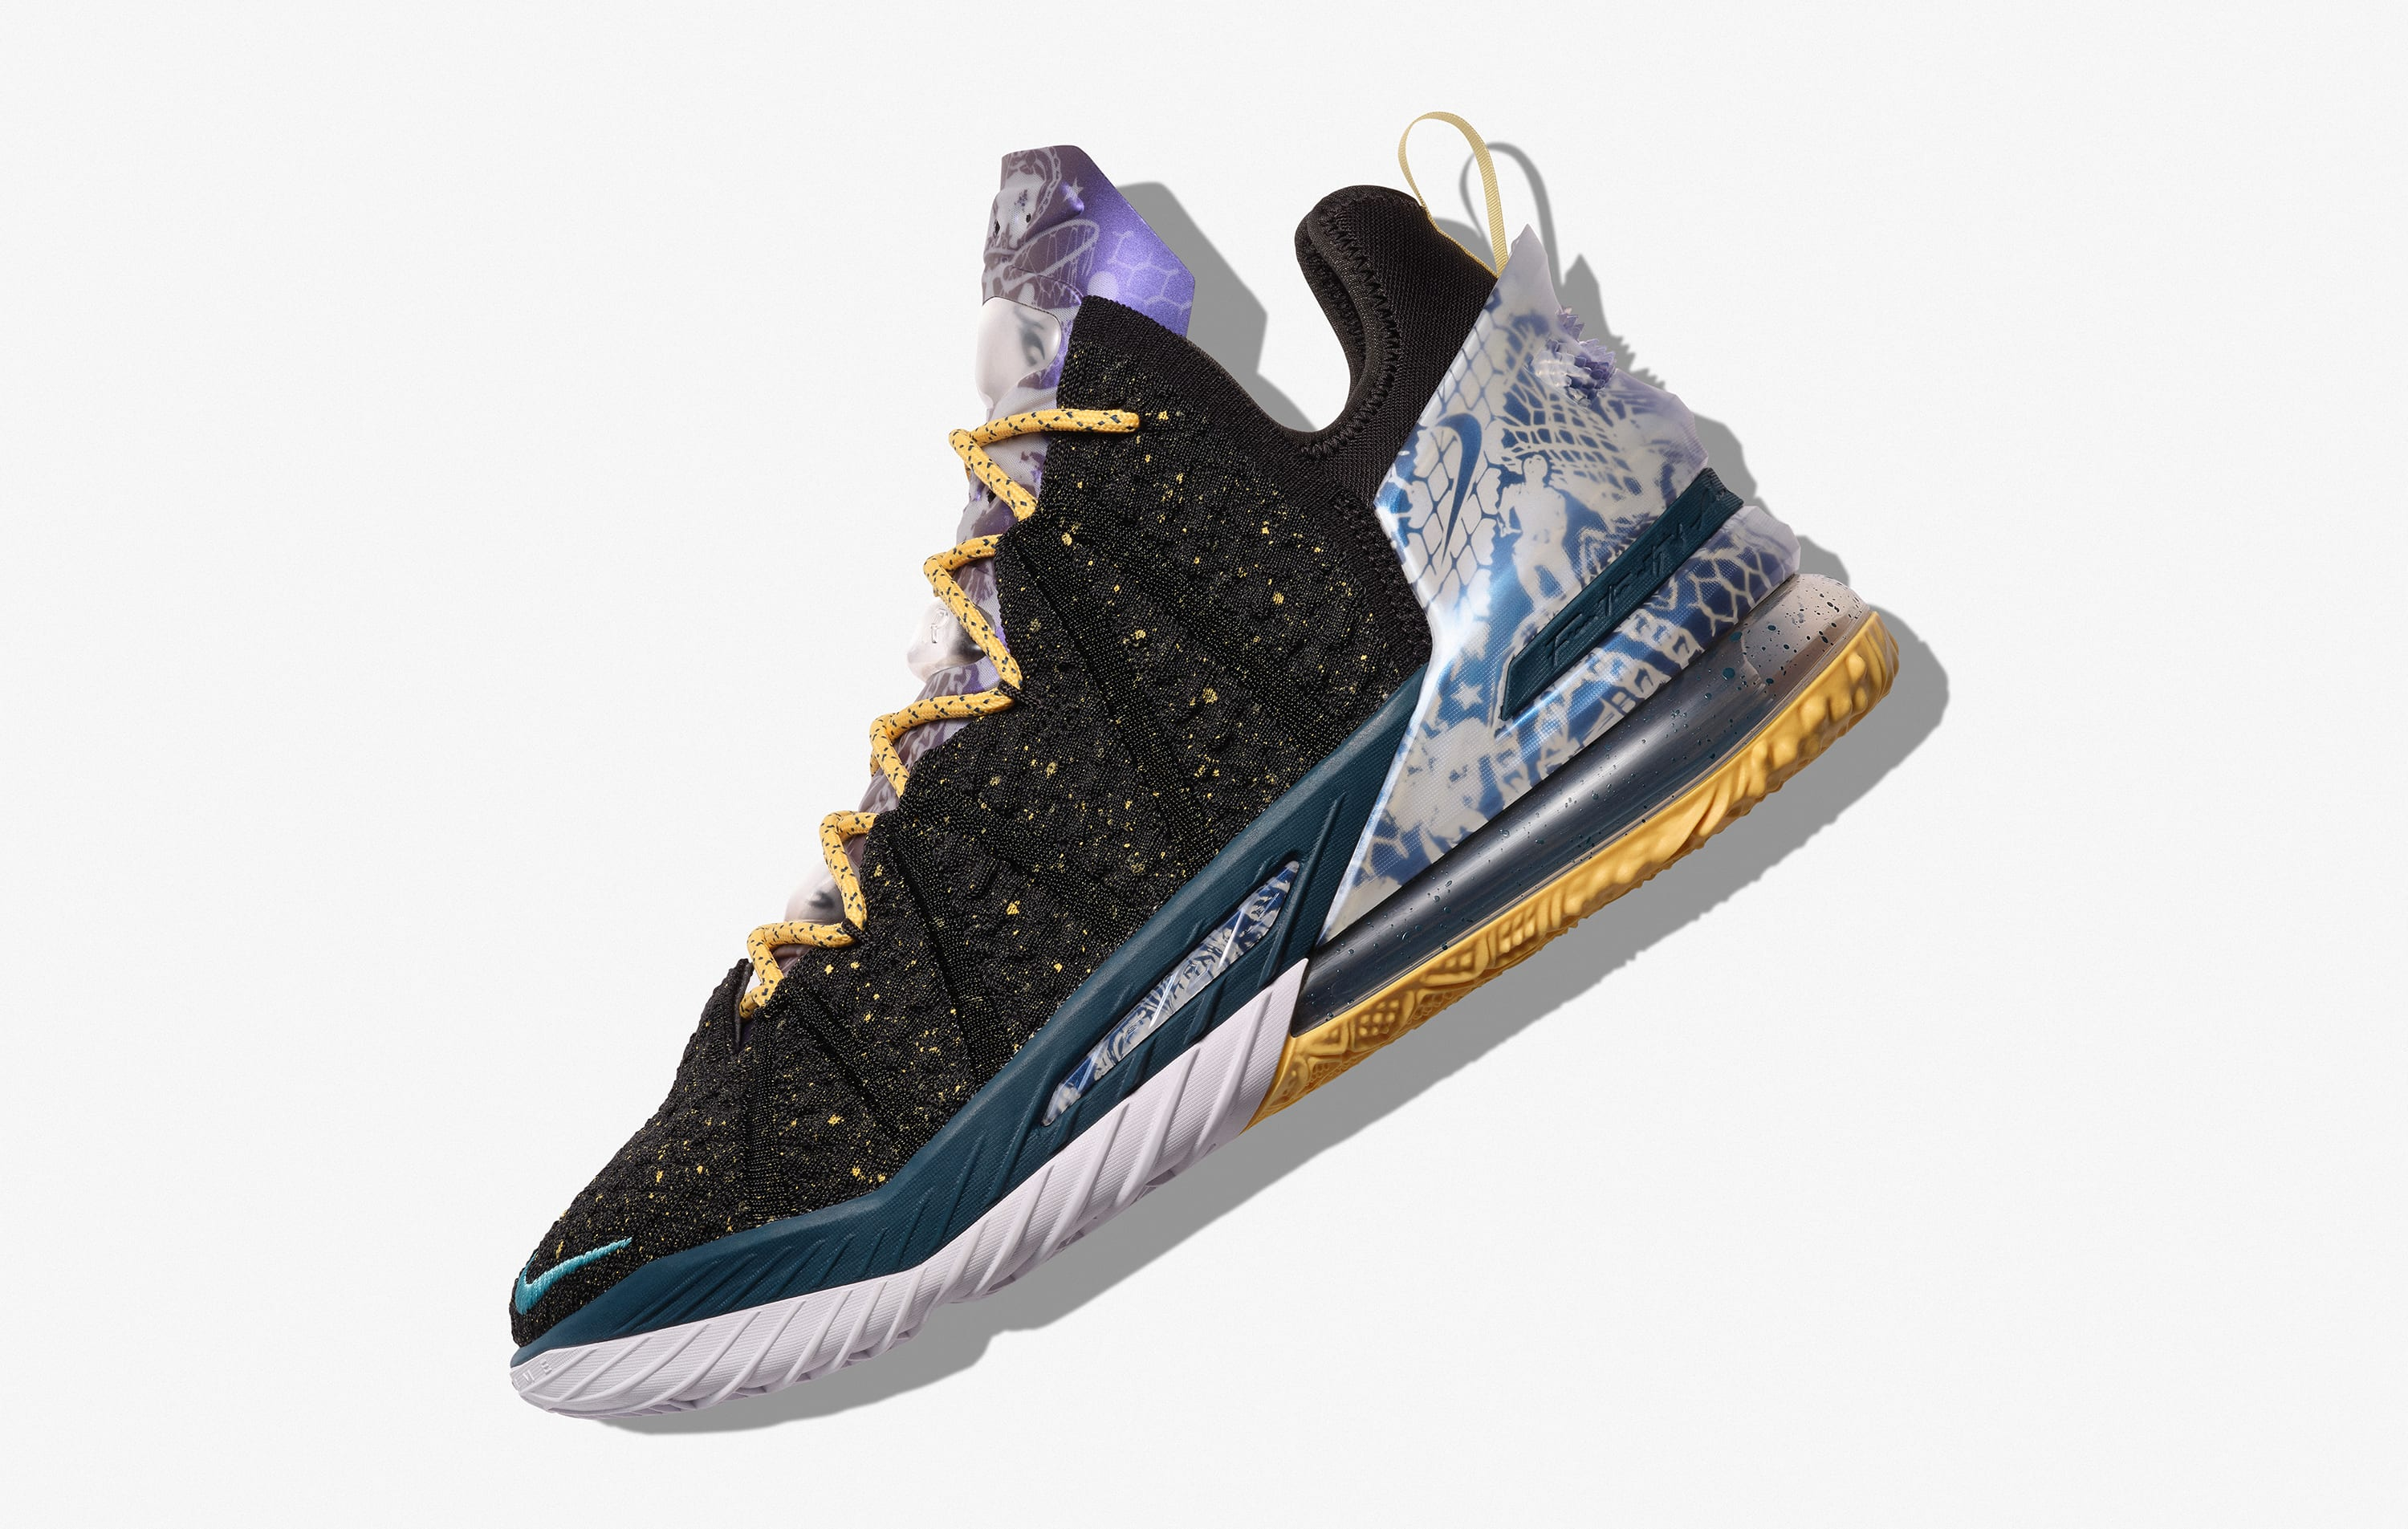 Nike LeBron 18 'Reflections' Lateral